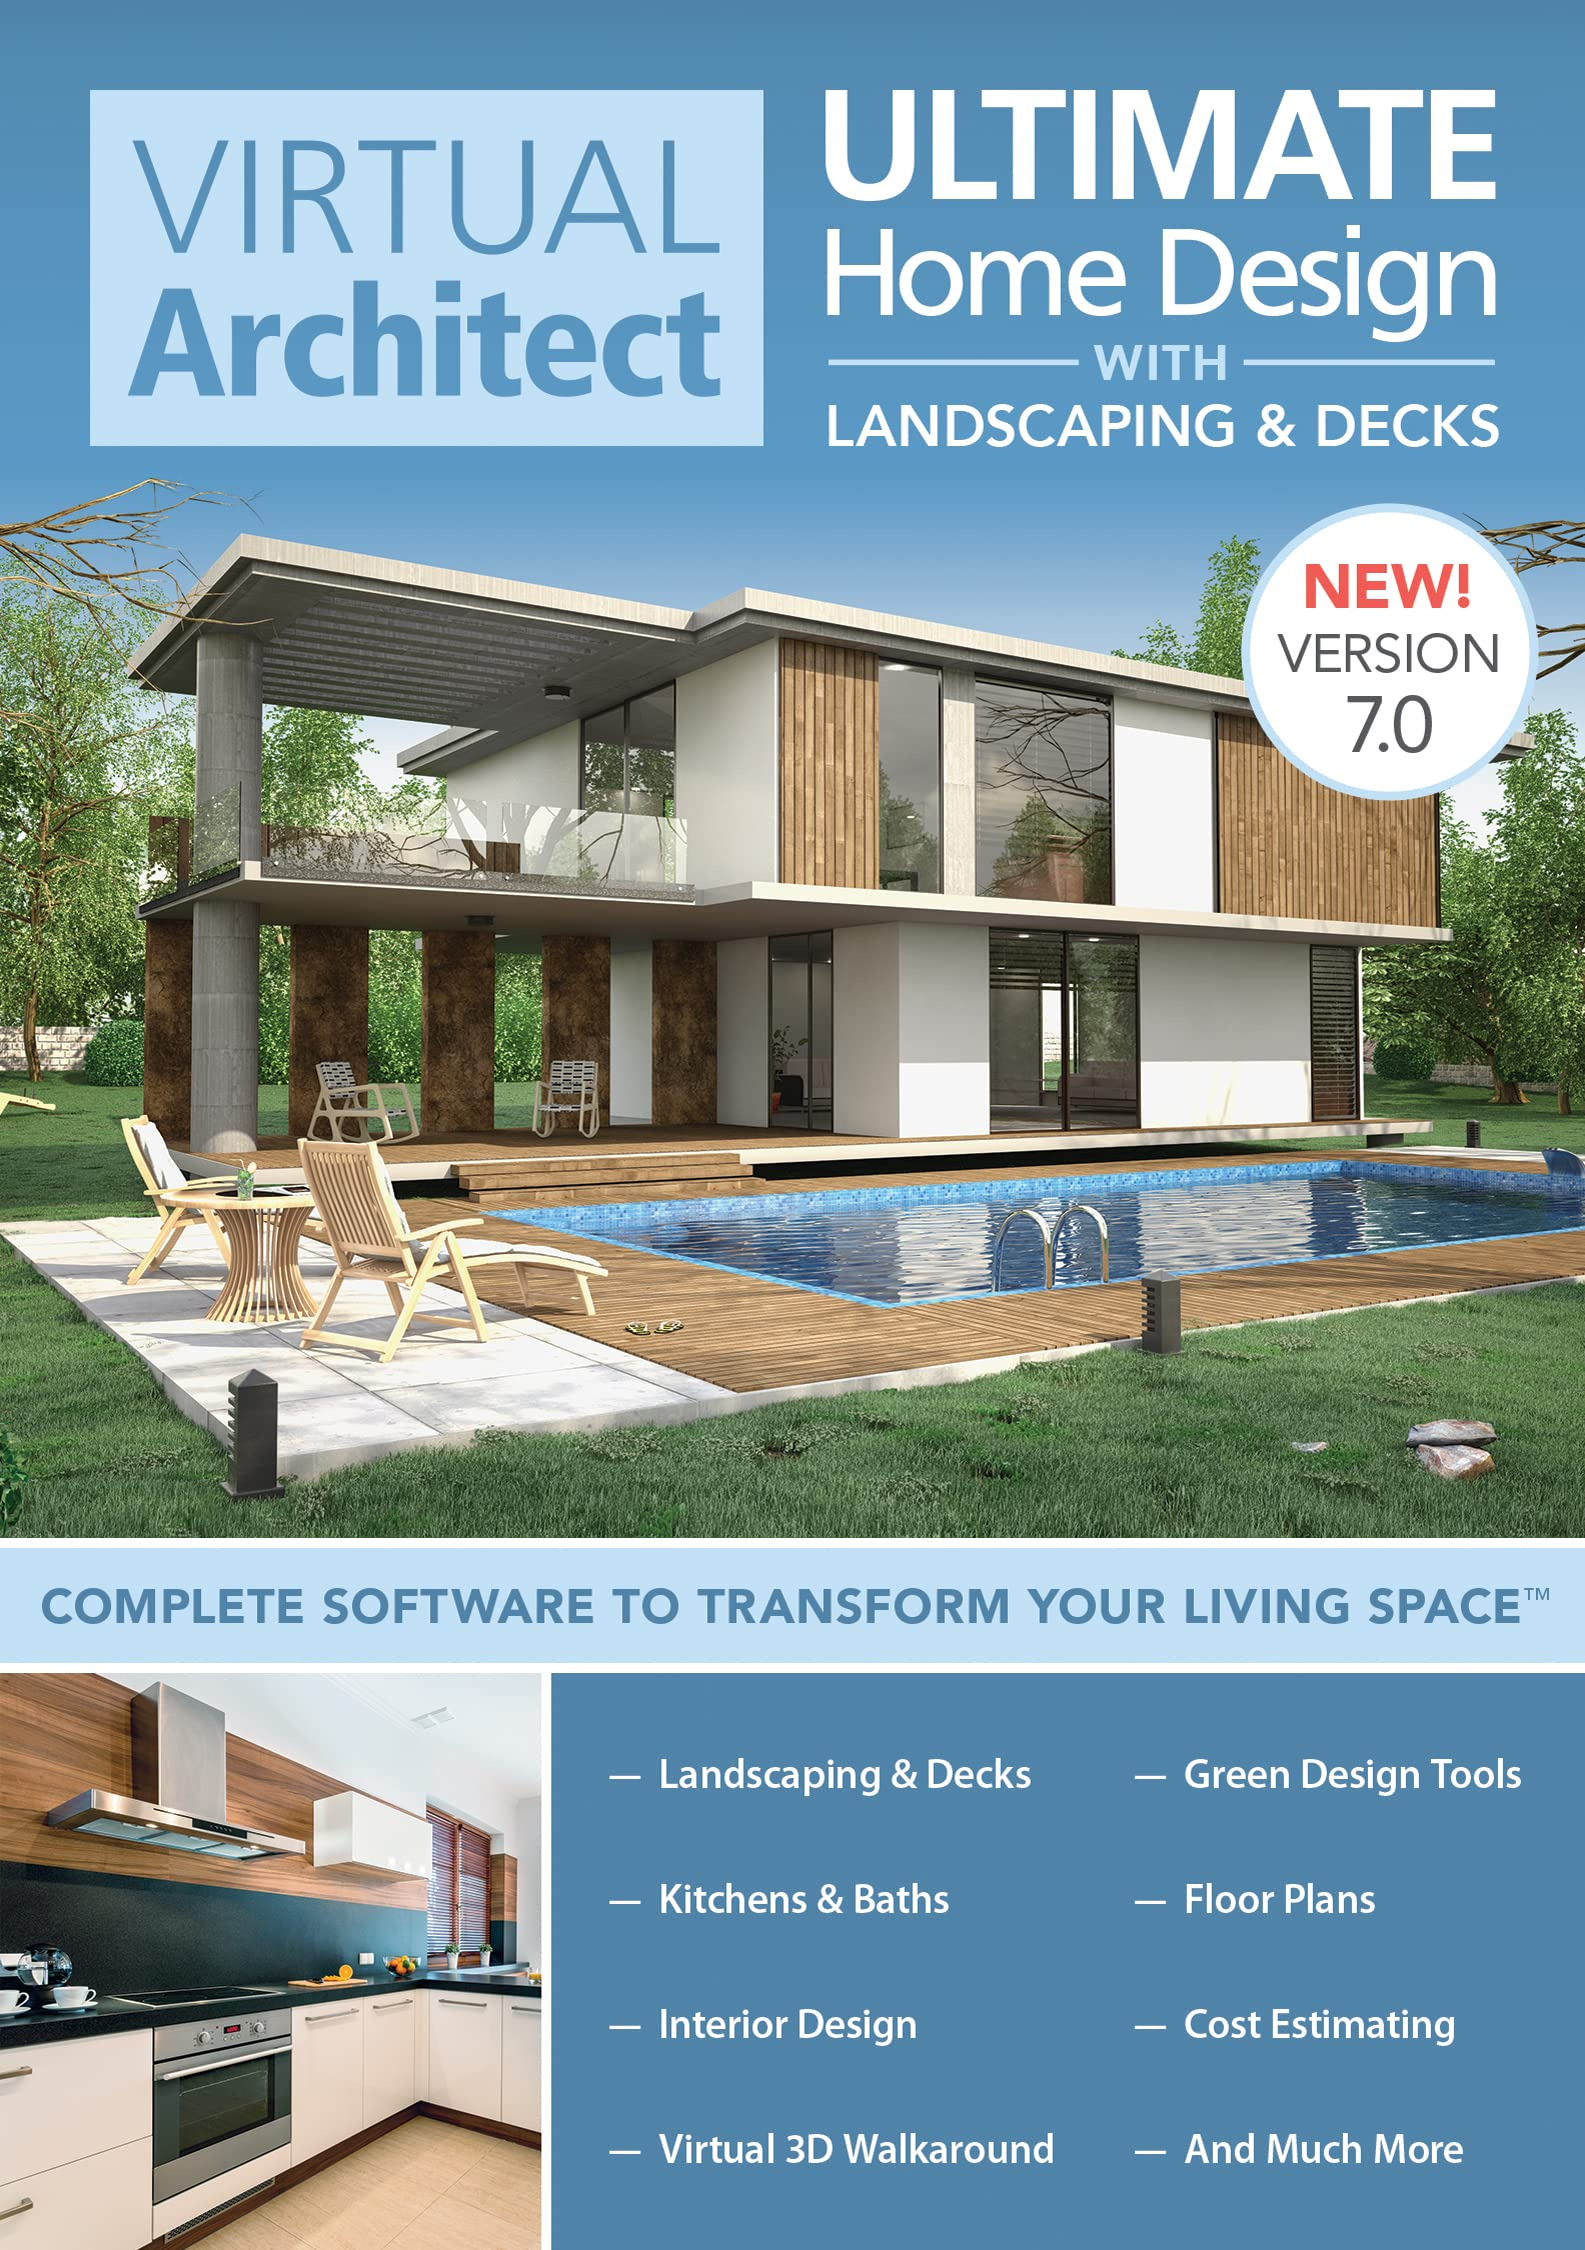 House Plans 3d software Free Download Luxury Virtual Architect Ultimate Home Design with Landscaping and Decks 7 0 [download]